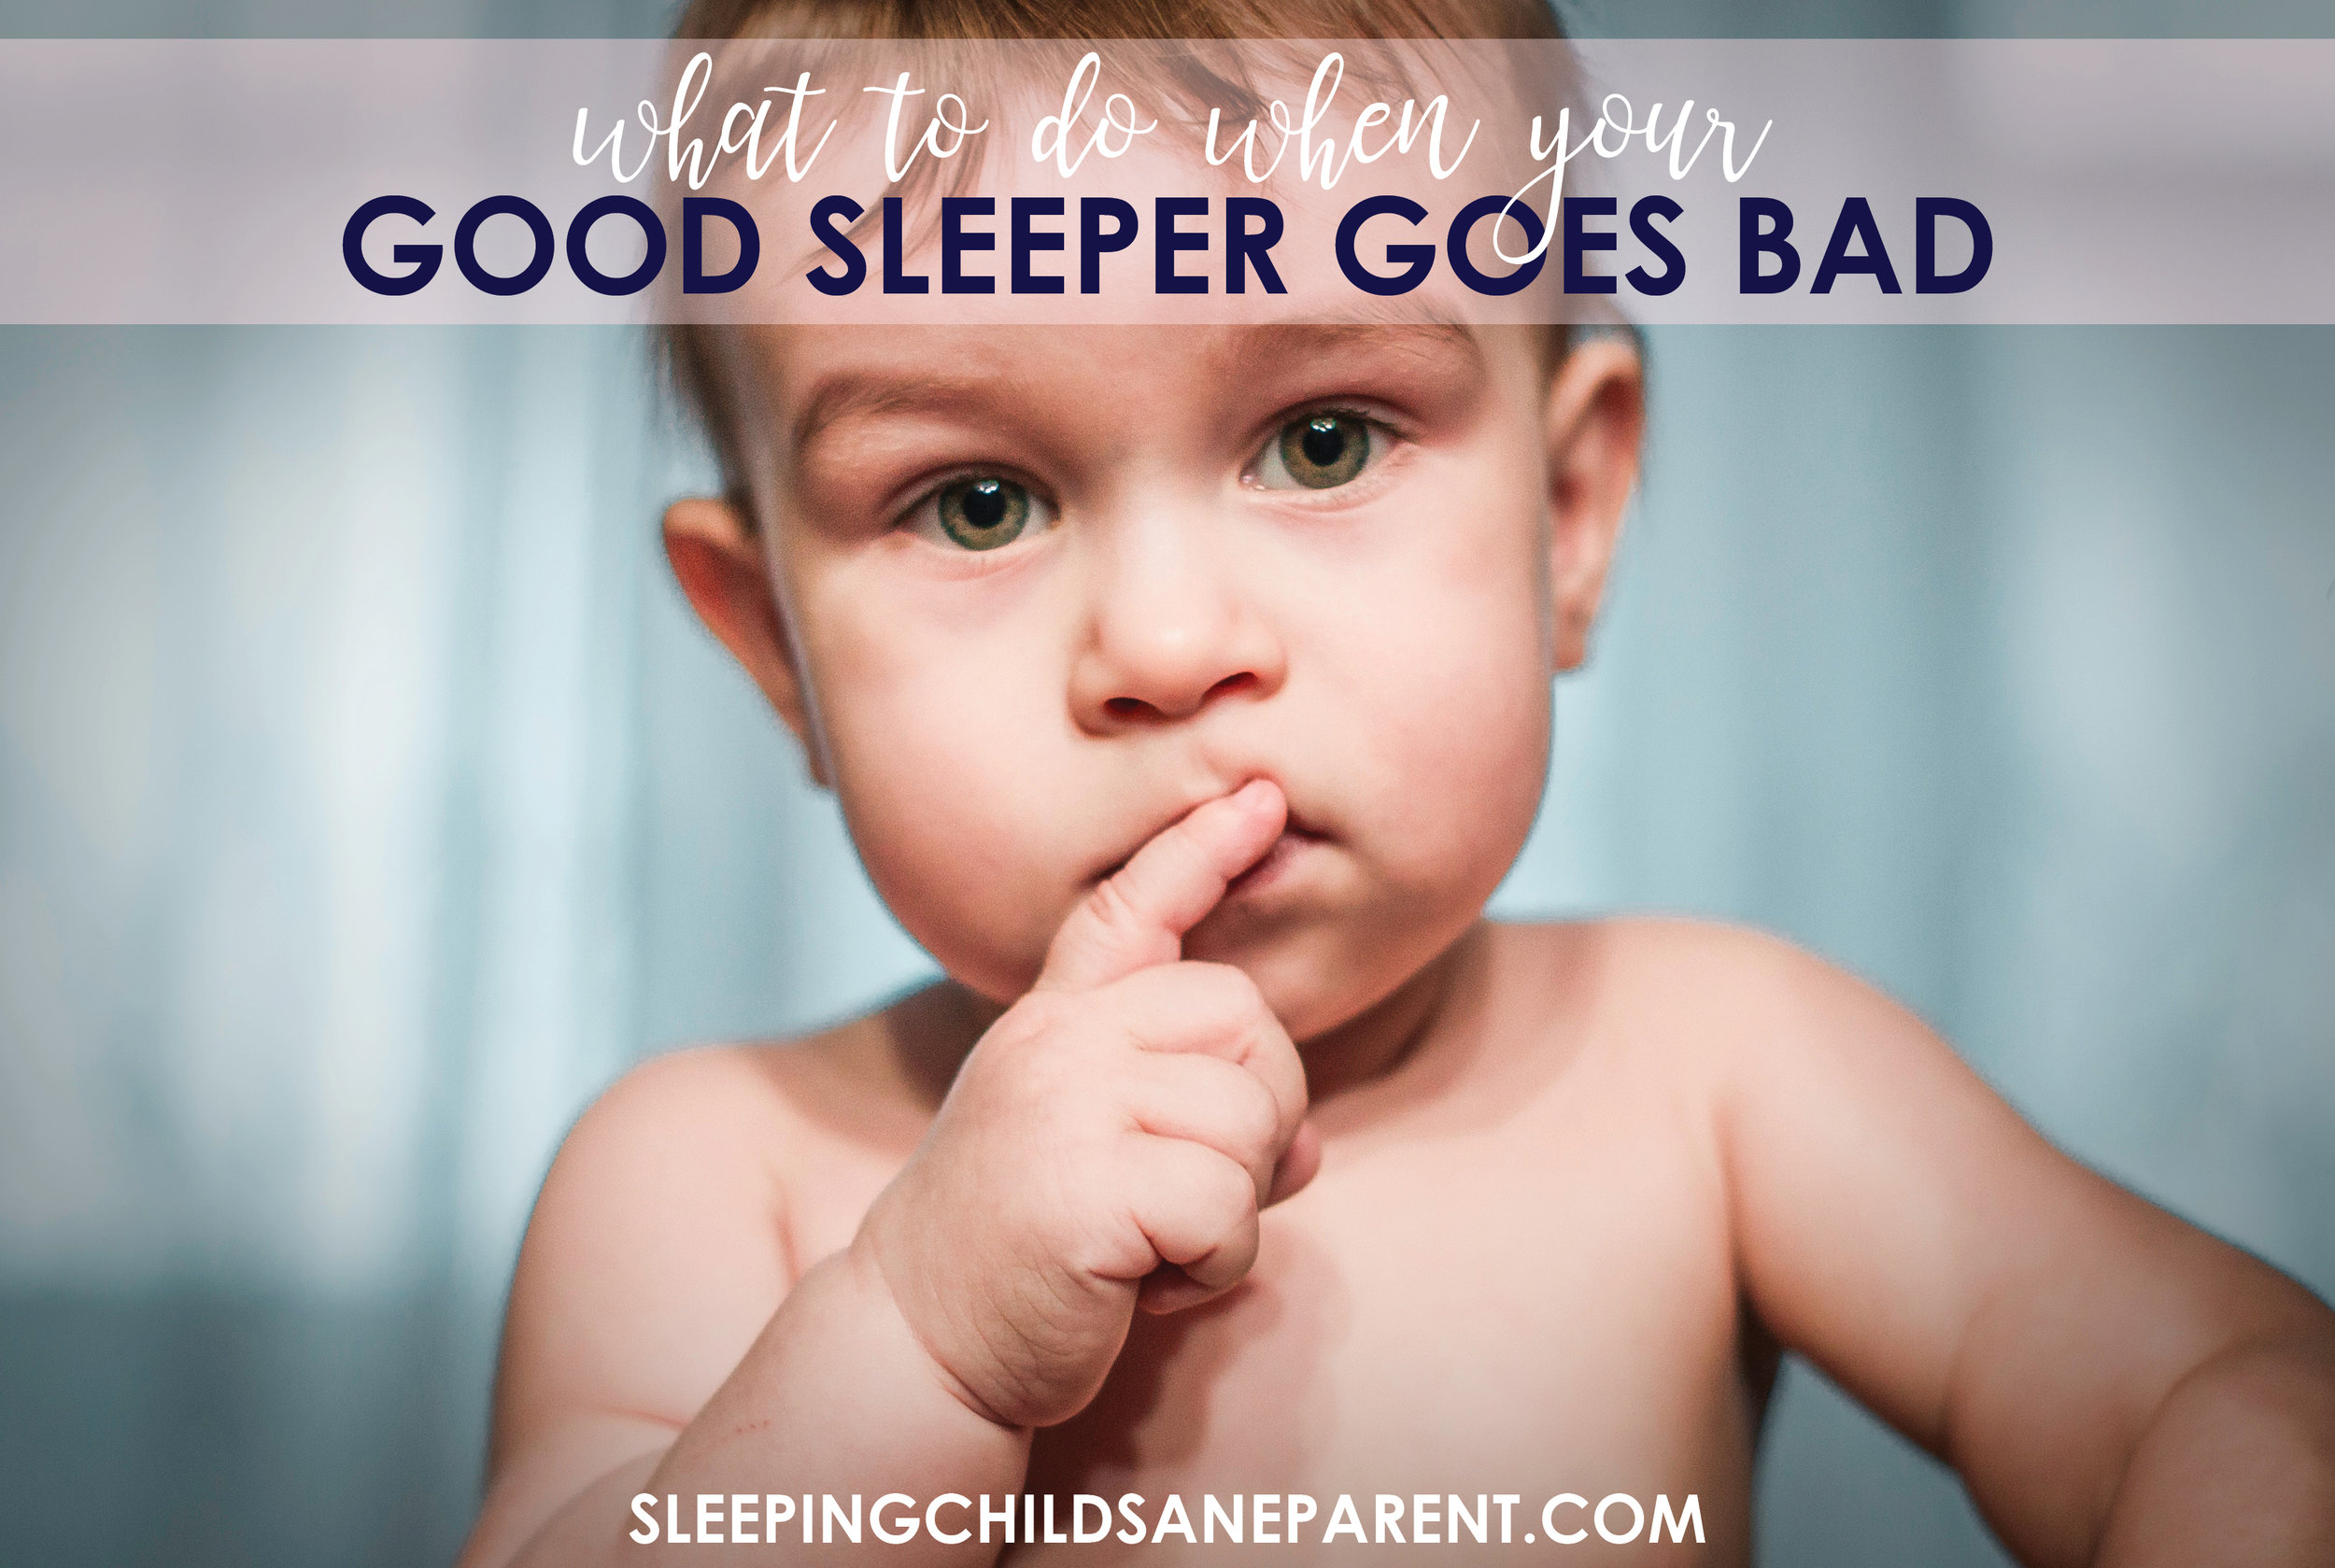 If your good sleeper has gone bad, check out this blog post for tips on WHY the switch may have occurred and HOW to address the bad sleep habits.